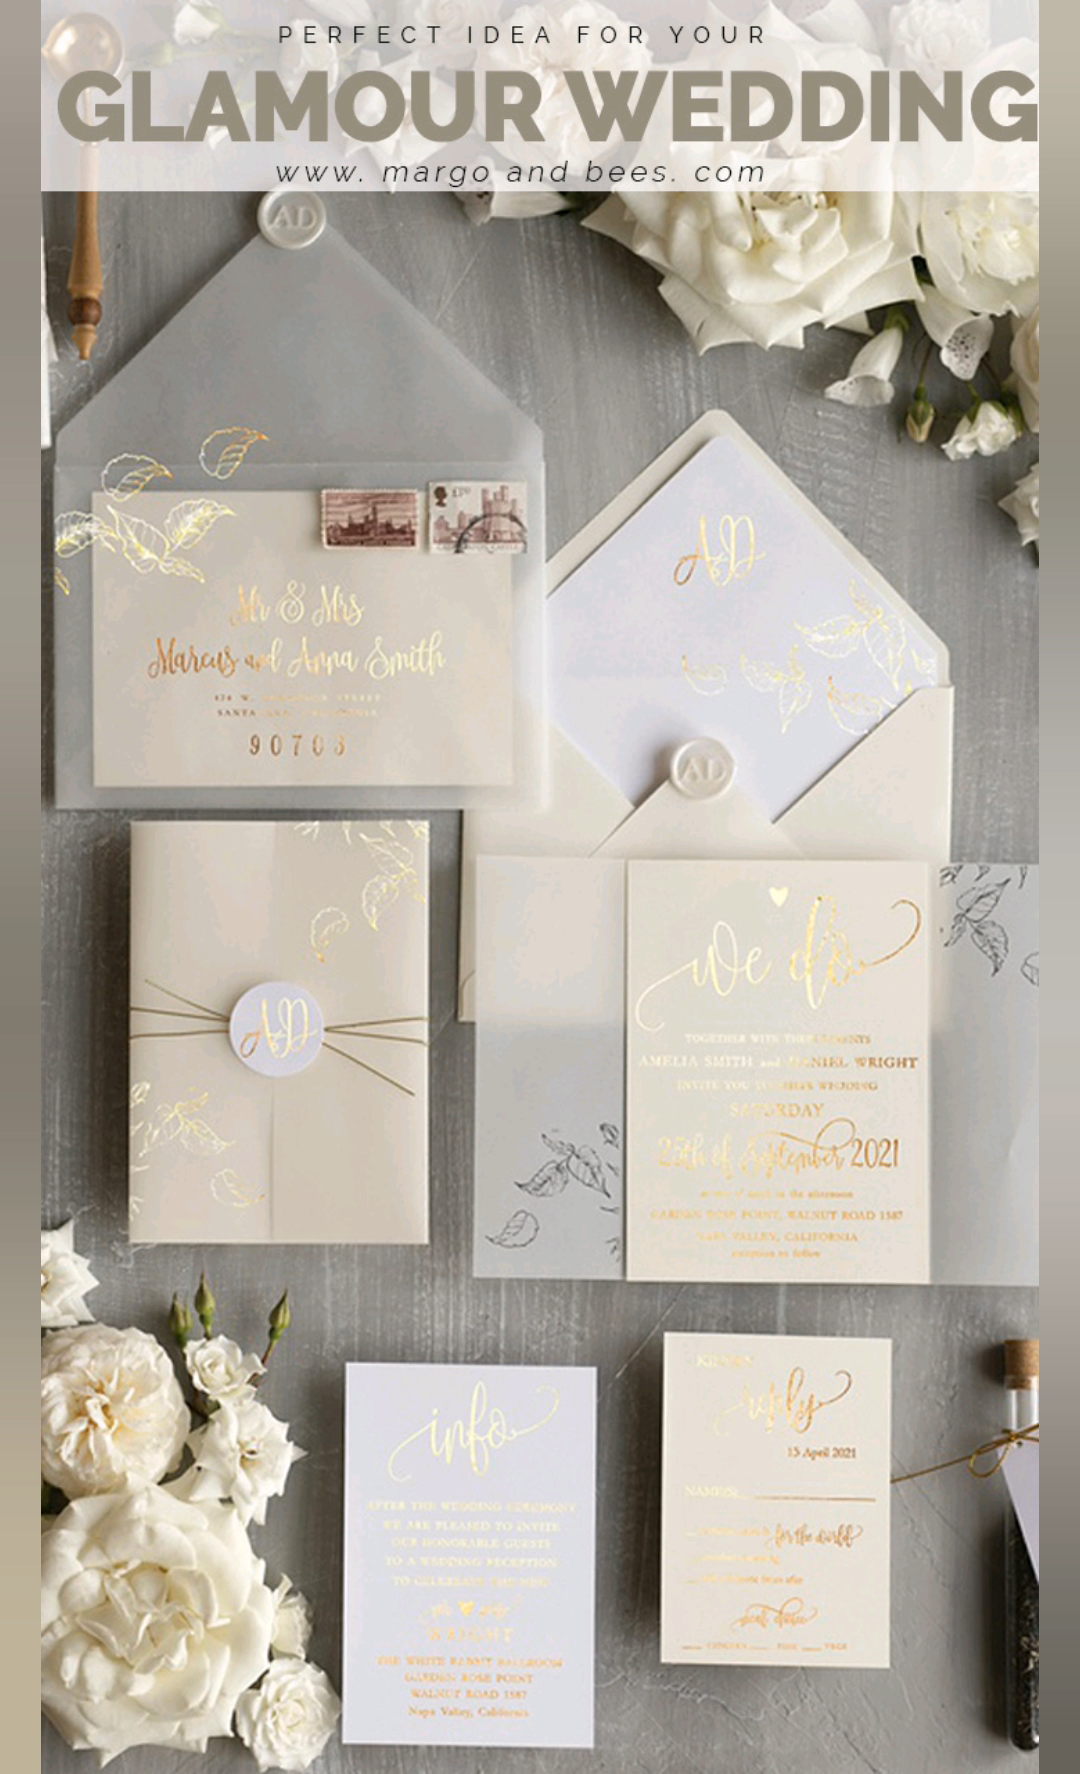 Simple And Elegant Wedding Invitations With Gold And Ivory Perfect For Classy In 2020 Elegant Wedding Invitations Classy Wedding Invitations Gold Wedding Invitations